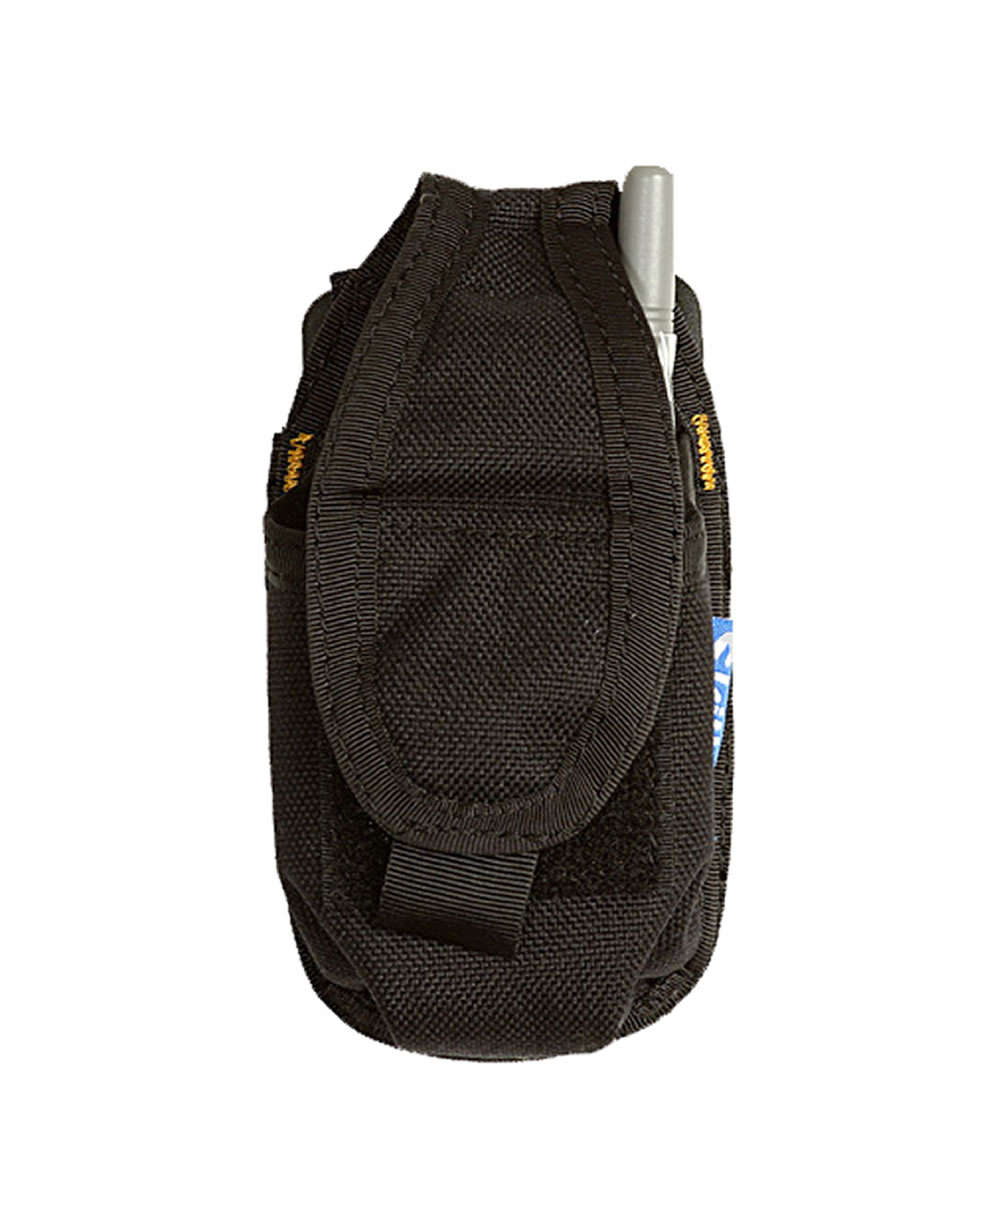 SKILLERS Small Cell Phone Pouch